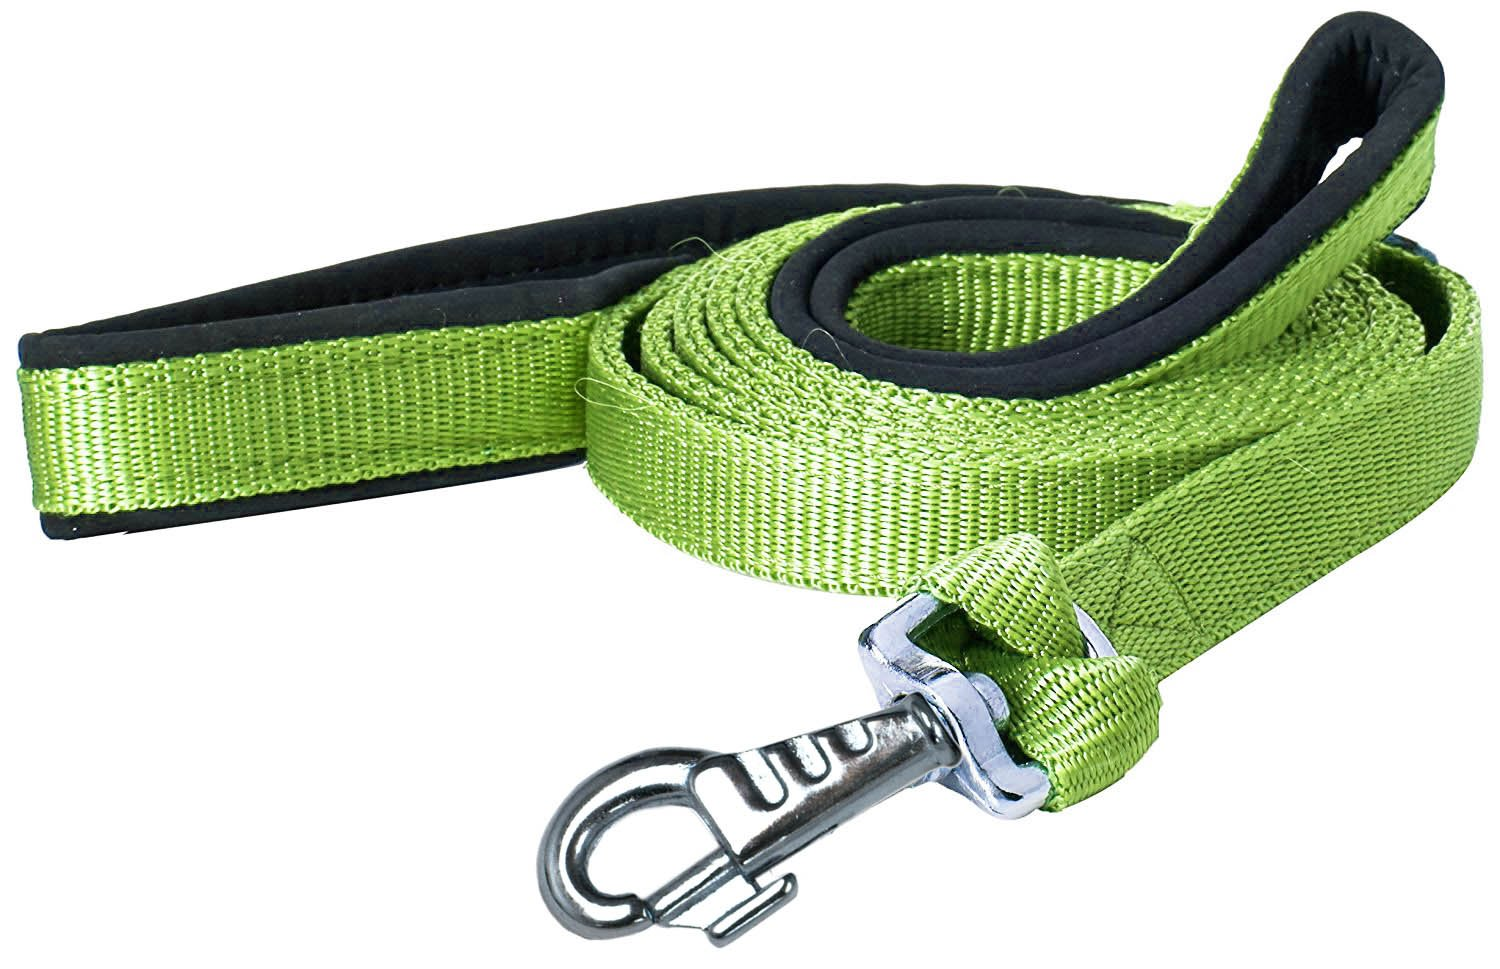 Green 3 4\ Green 3 4\ cuteNfuzzy Padded Double Handle Leash with Warranted Snap Design, Green, 3 4 by 6'